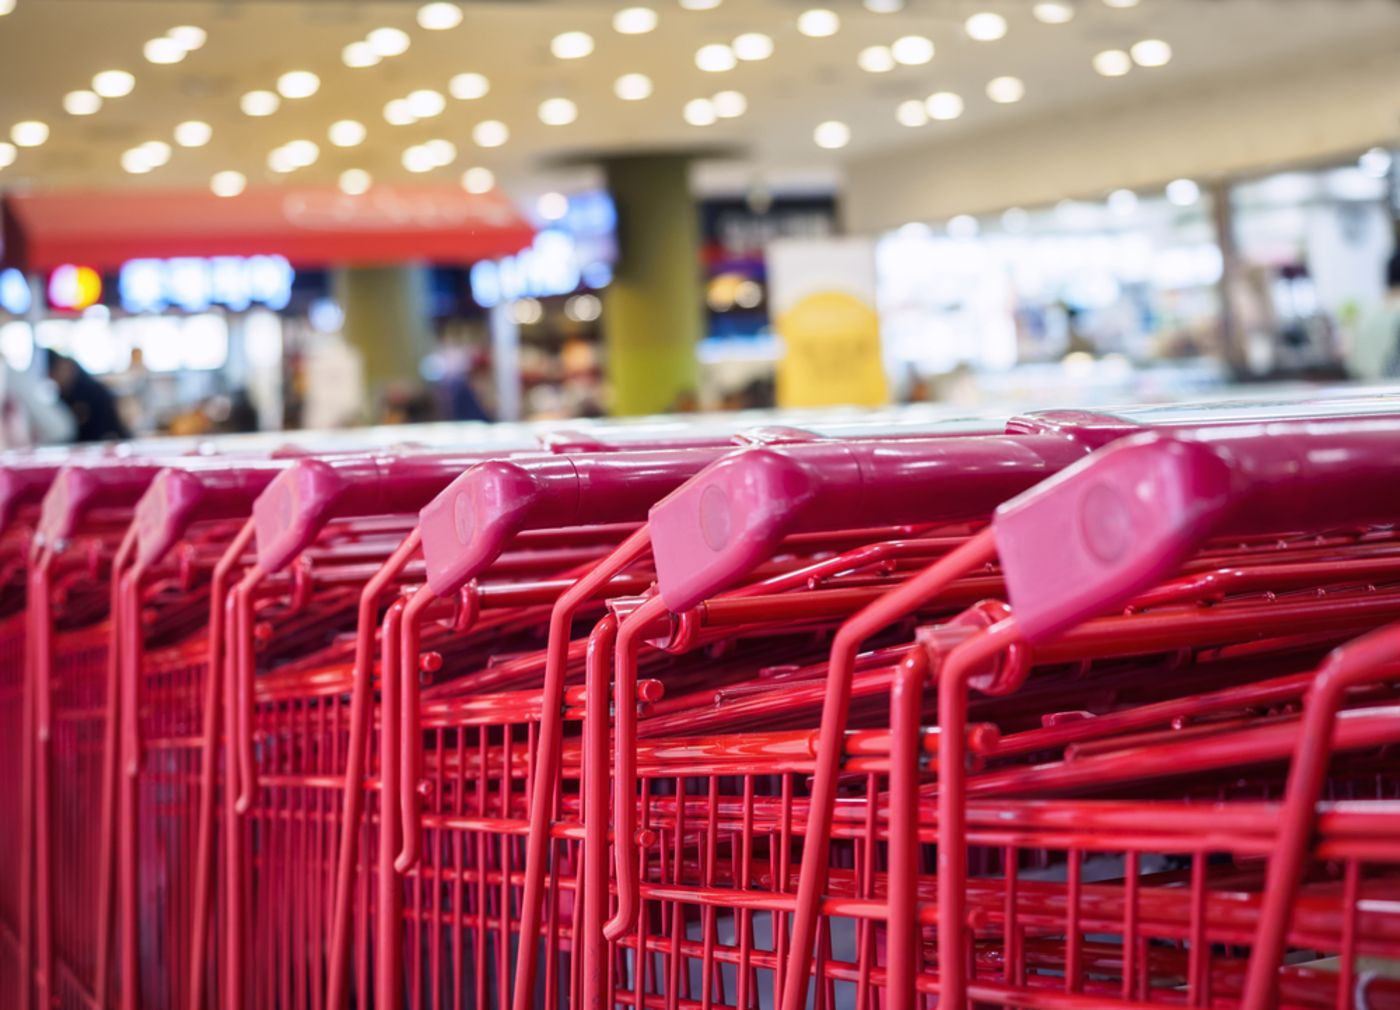 https://tickertapecdn.tdameritrade.com/assets/images/pages/md/Row of Target shopping carts in a store